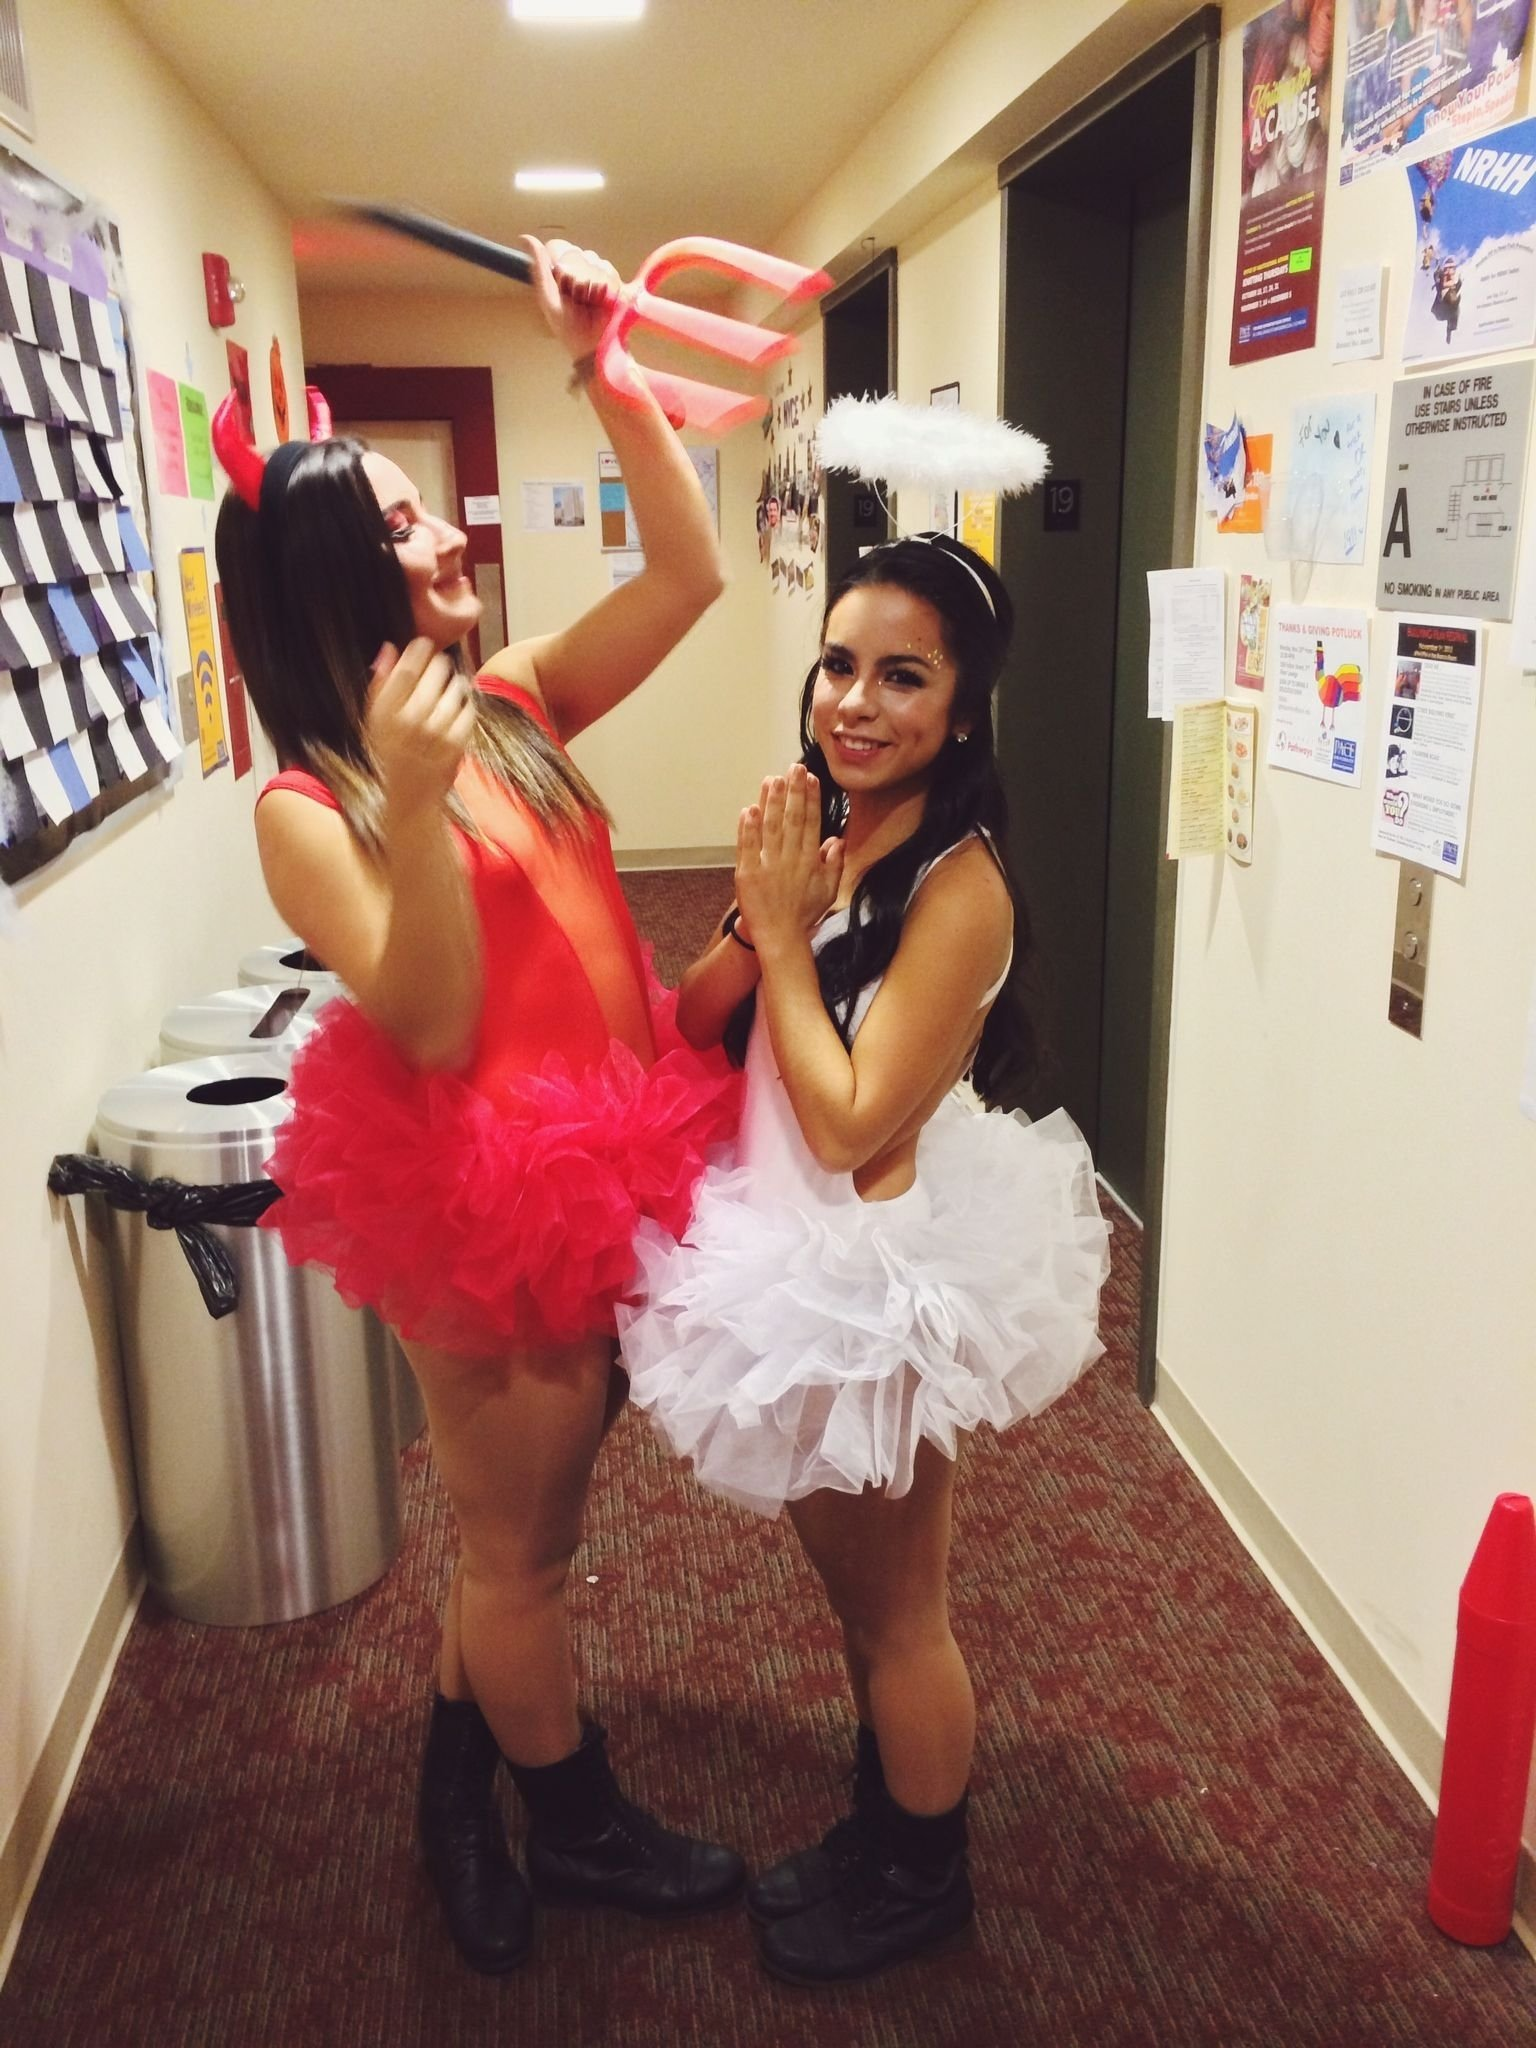 10 Awesome Heaven And Hell Costume Ideas halloween costume angel devil college pinterest halloween 2020